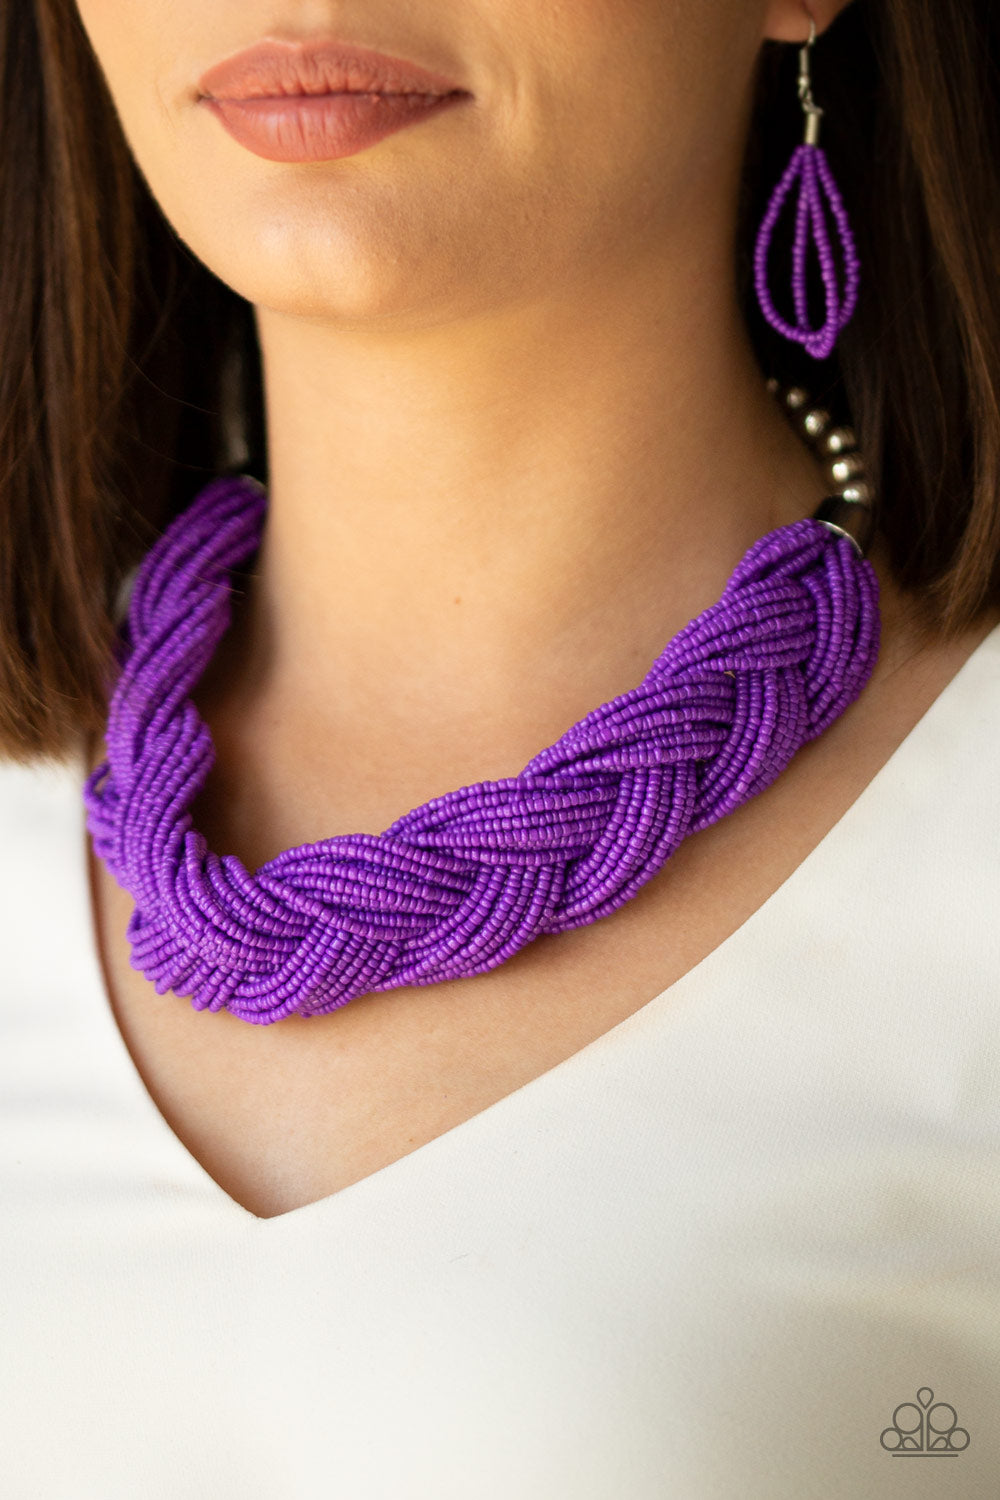 Paparazzi Jewelry & Accessories - The Great Outback - Purple Seed Bead Necklace. Bling By Titia Boutique